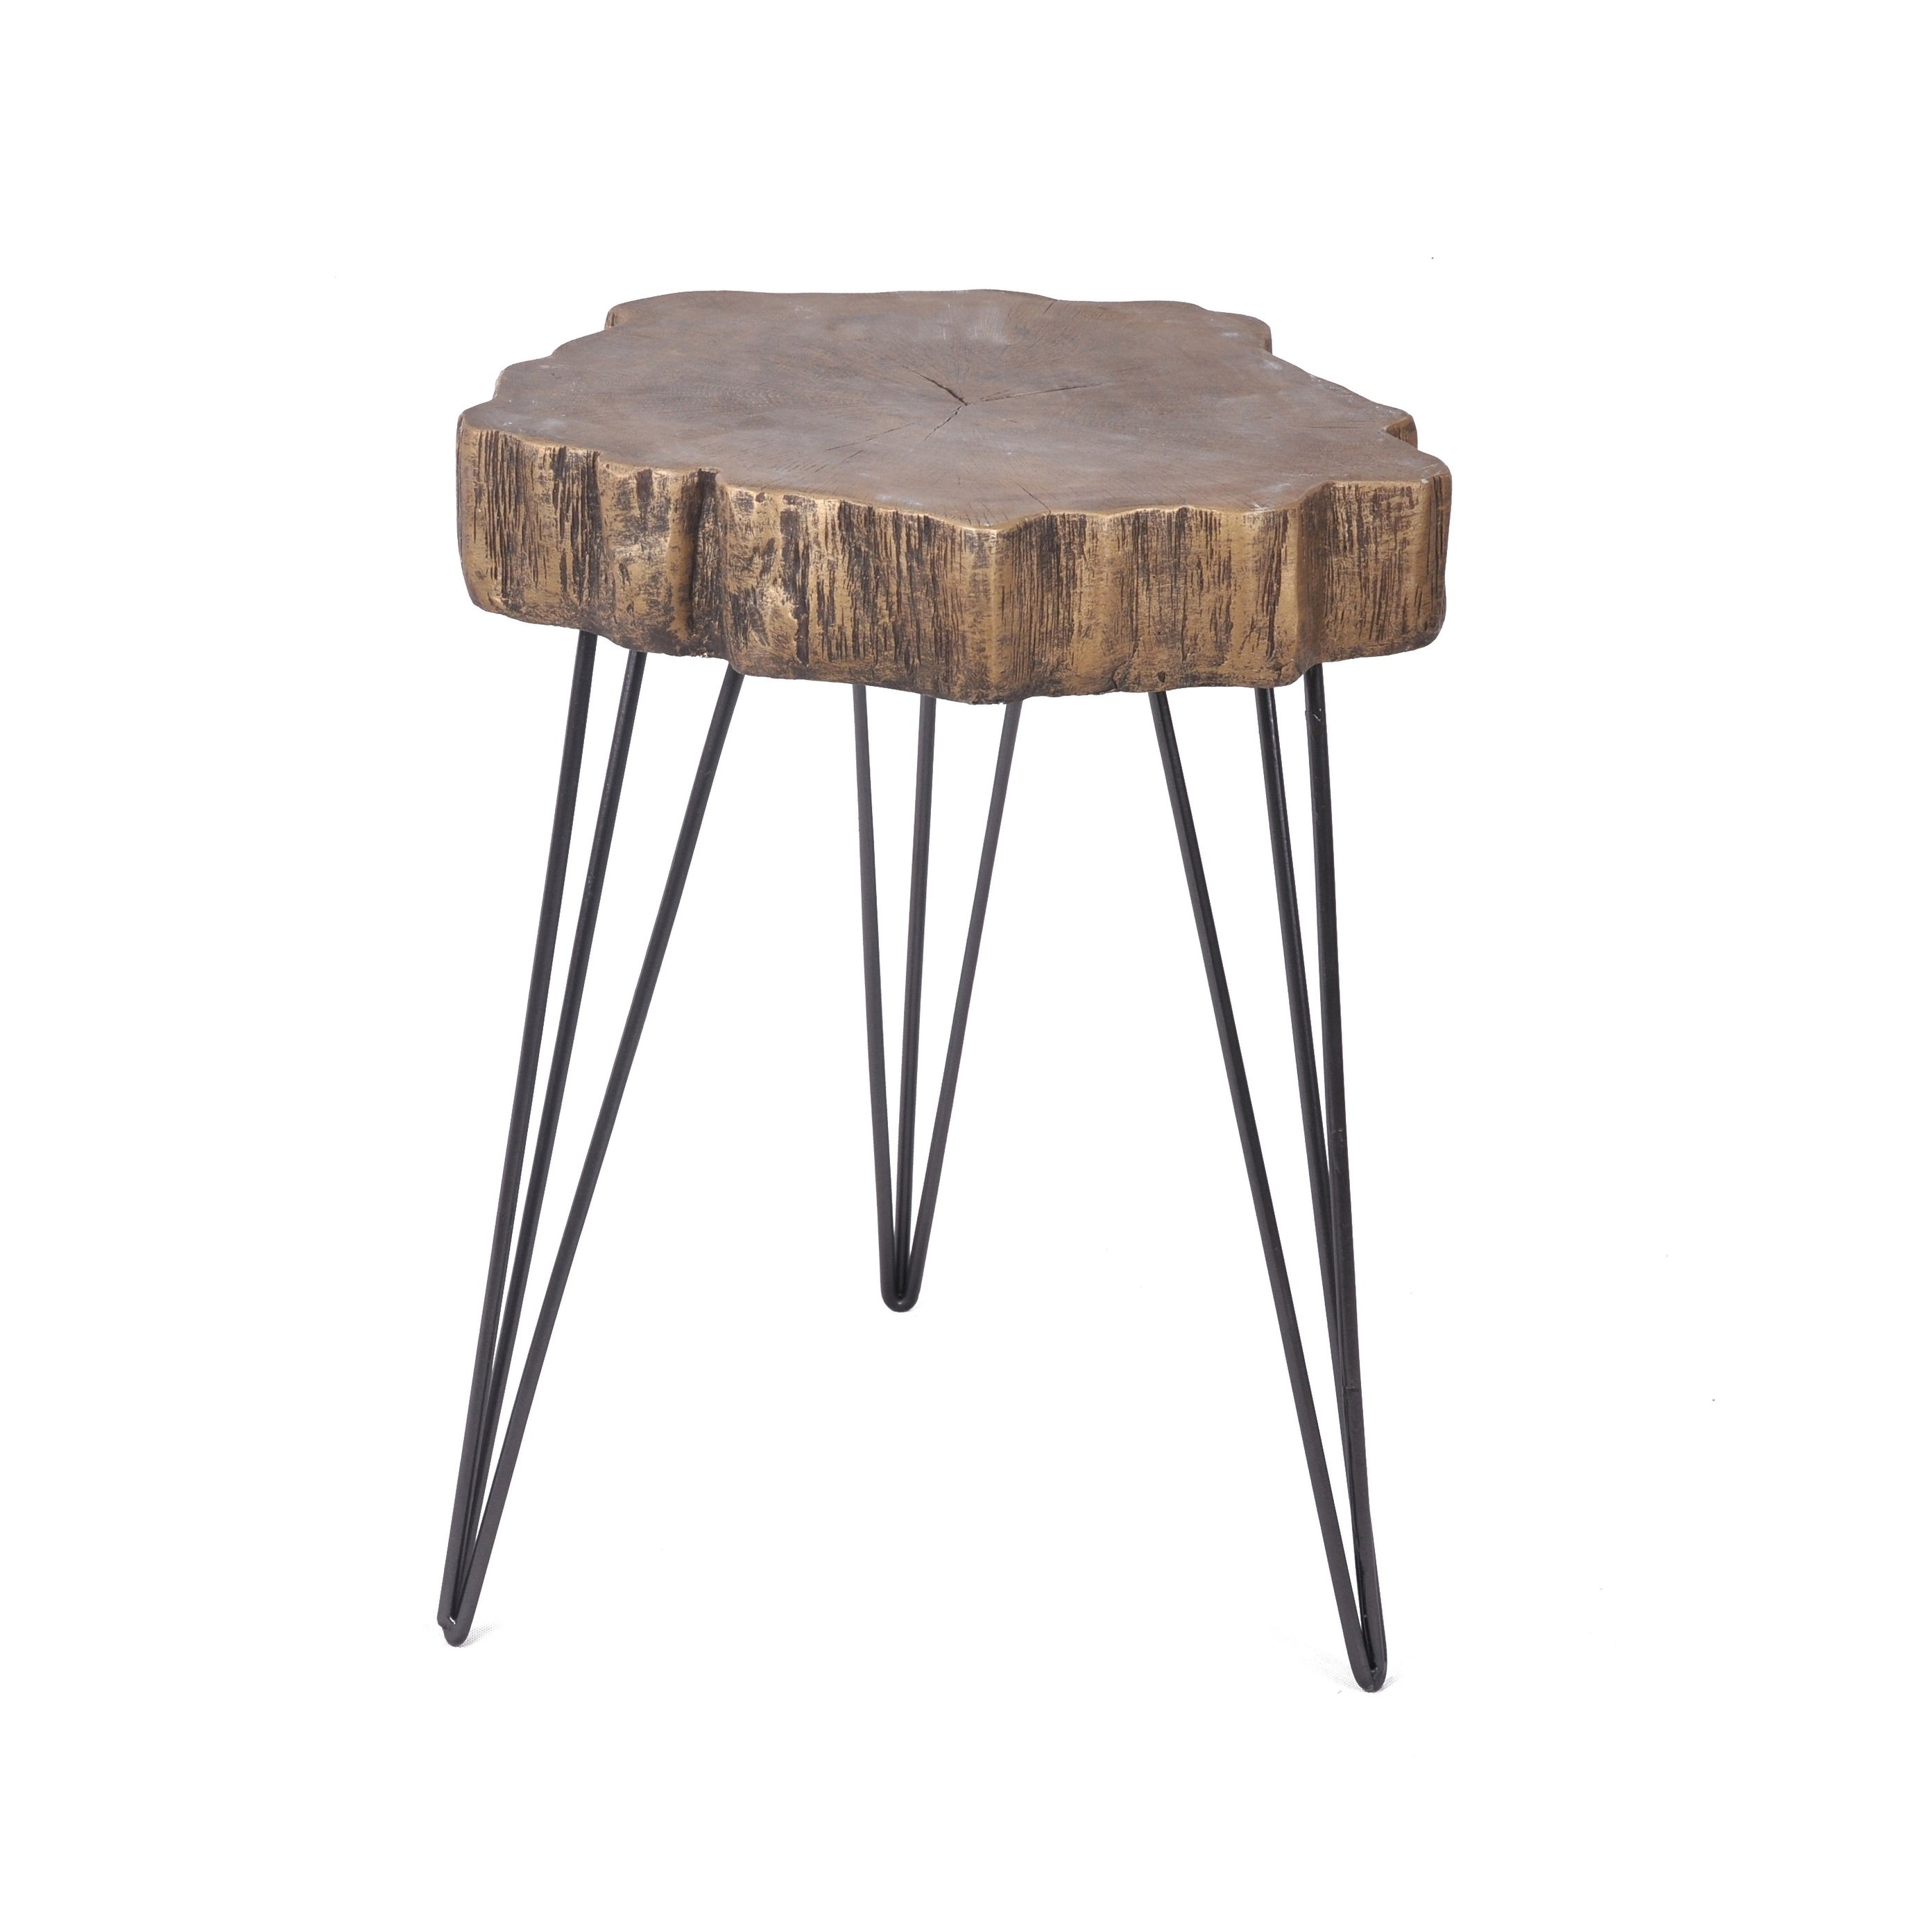 aurelle home live edge modern gold magnesium oxide accent table small free shipping today pier one chairs patio depot side resin white glass coffee nate berkus lamp metal garden